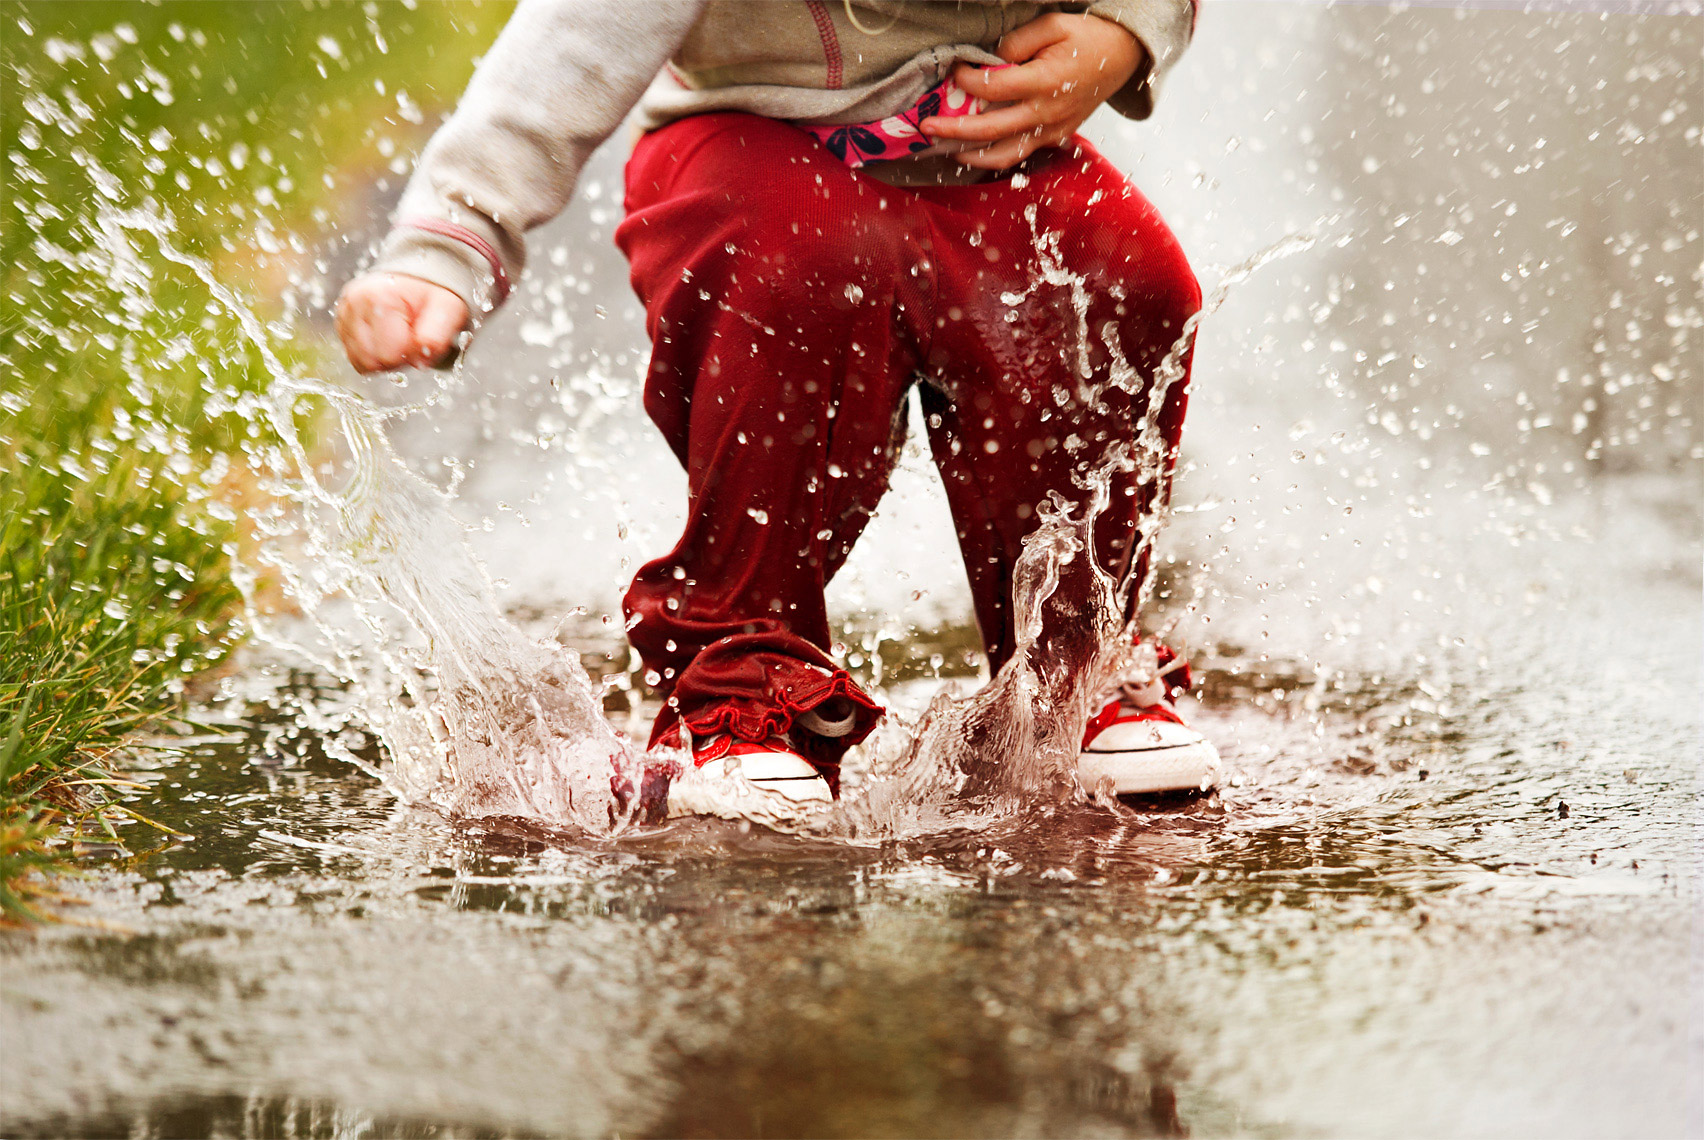 scott-stewart-lifestyle-photograph-of-child-dancing-in-the-water-ann-arbor-photographer